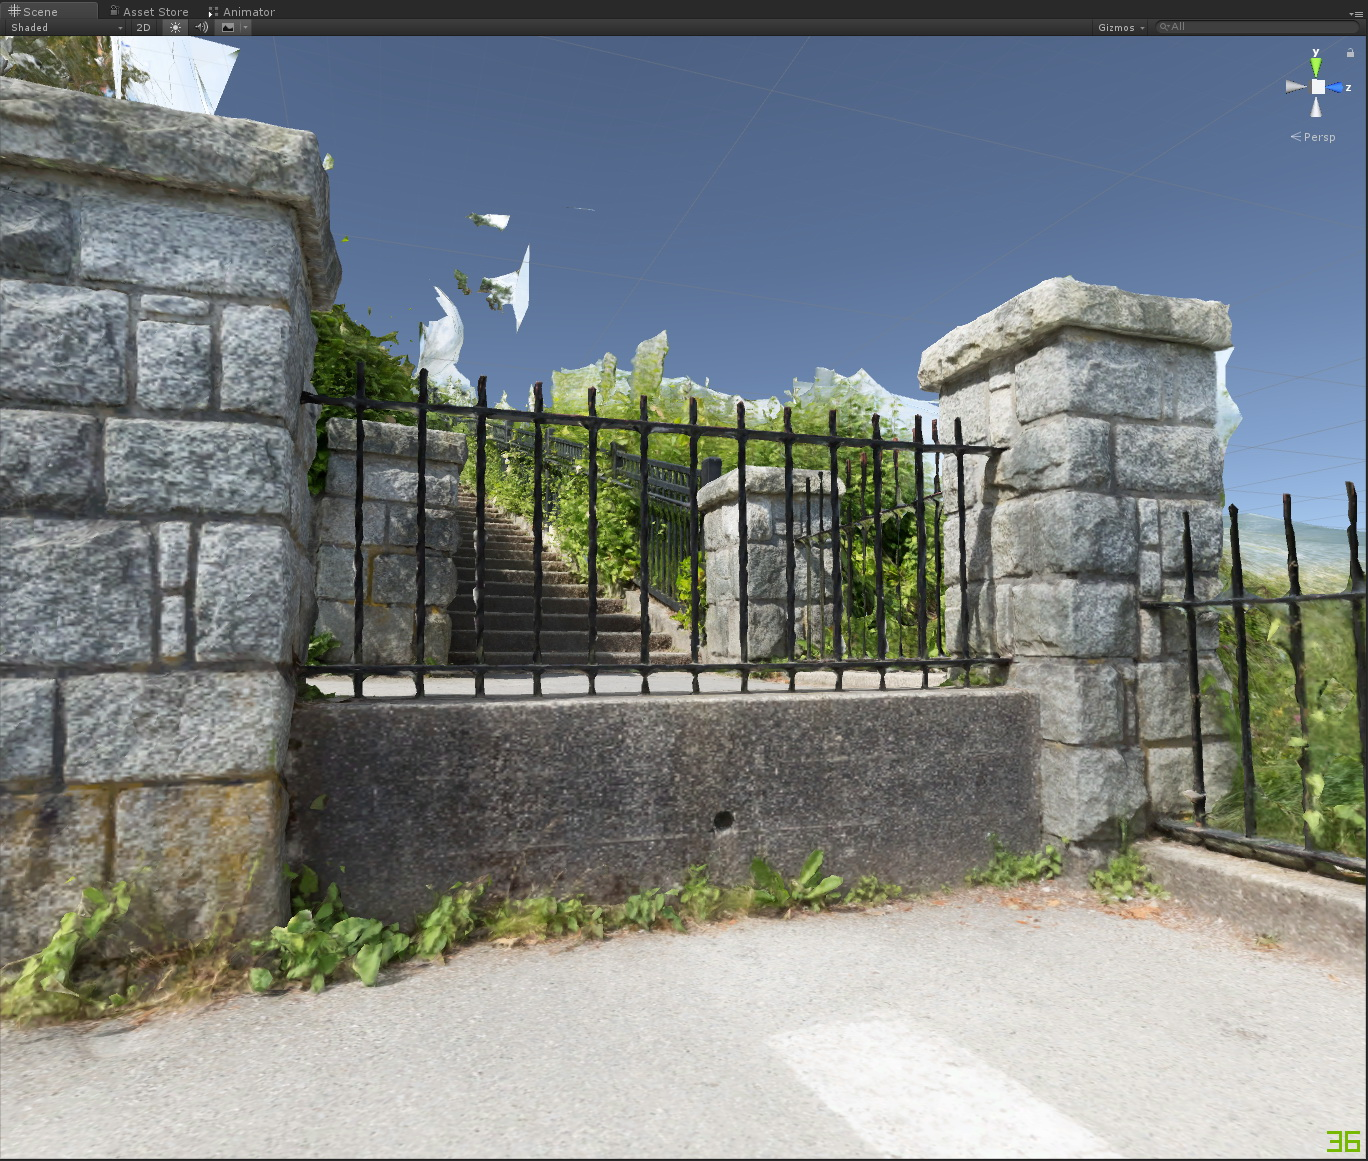 photogrammetry results